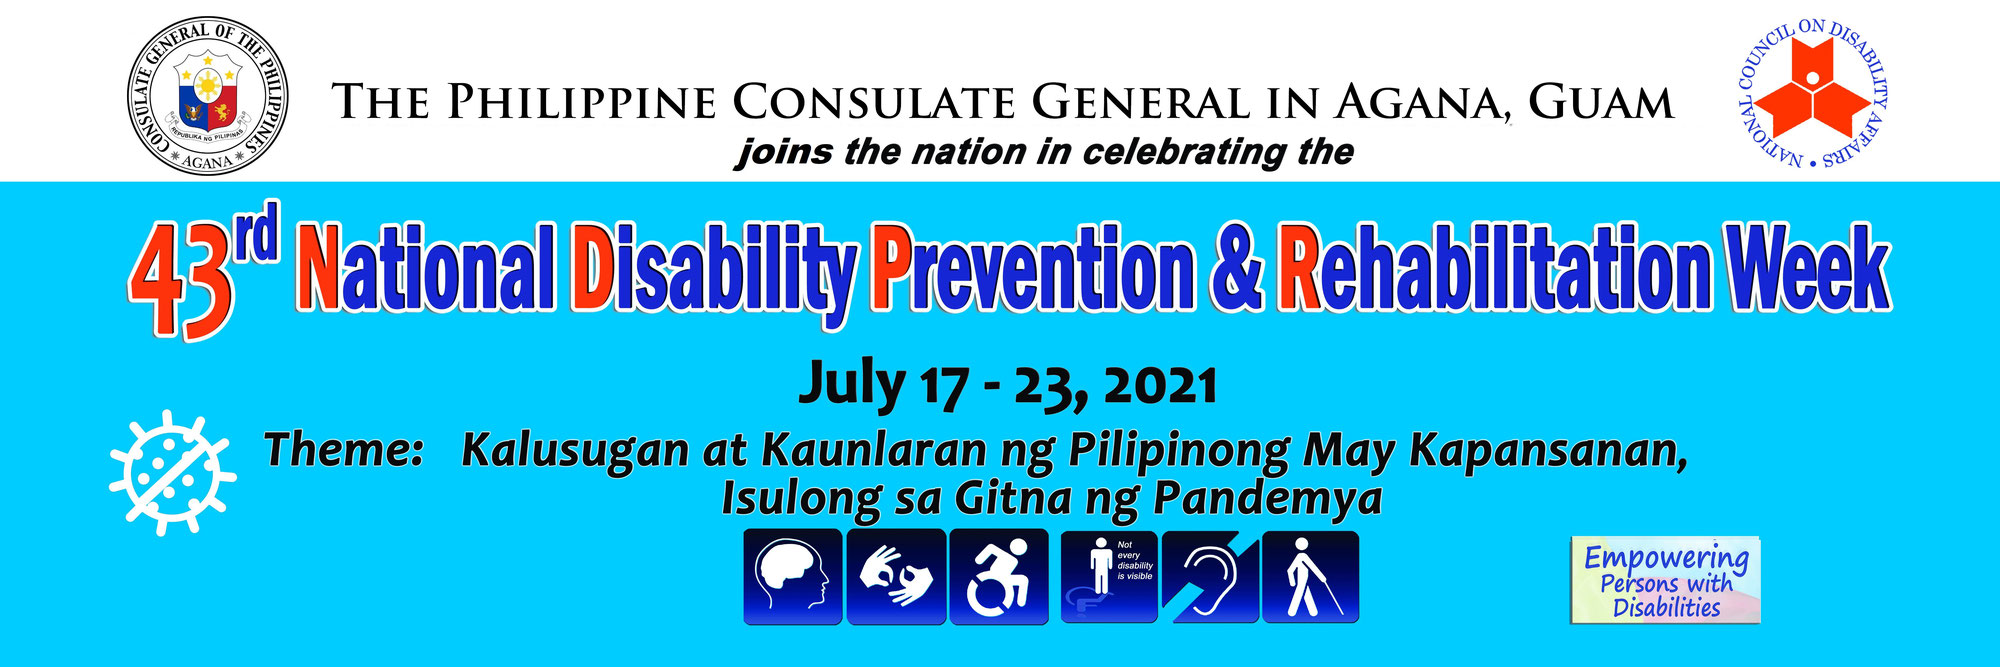 July 17-23 is 43rd National Disability Prevention and Rehabilitation (NDPR) Week